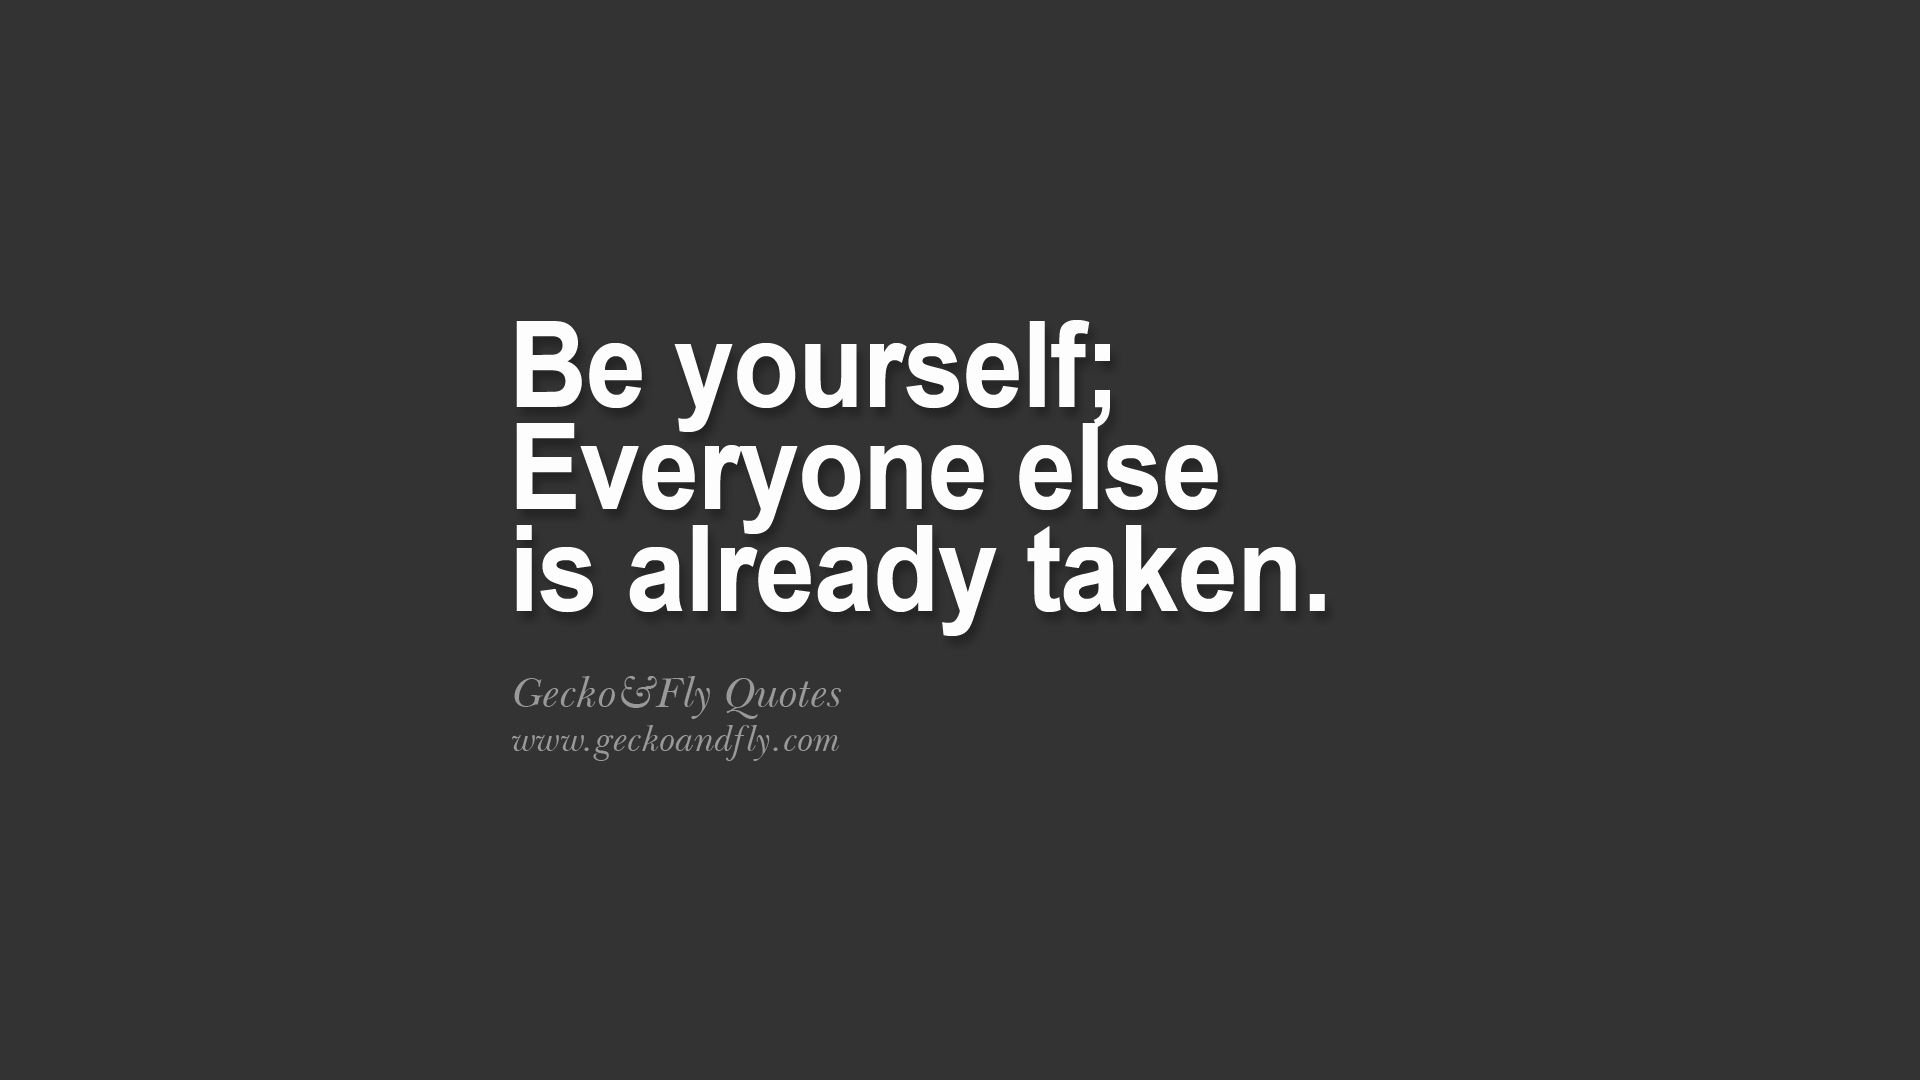 Self Quotes About Yourself. QuotesGram